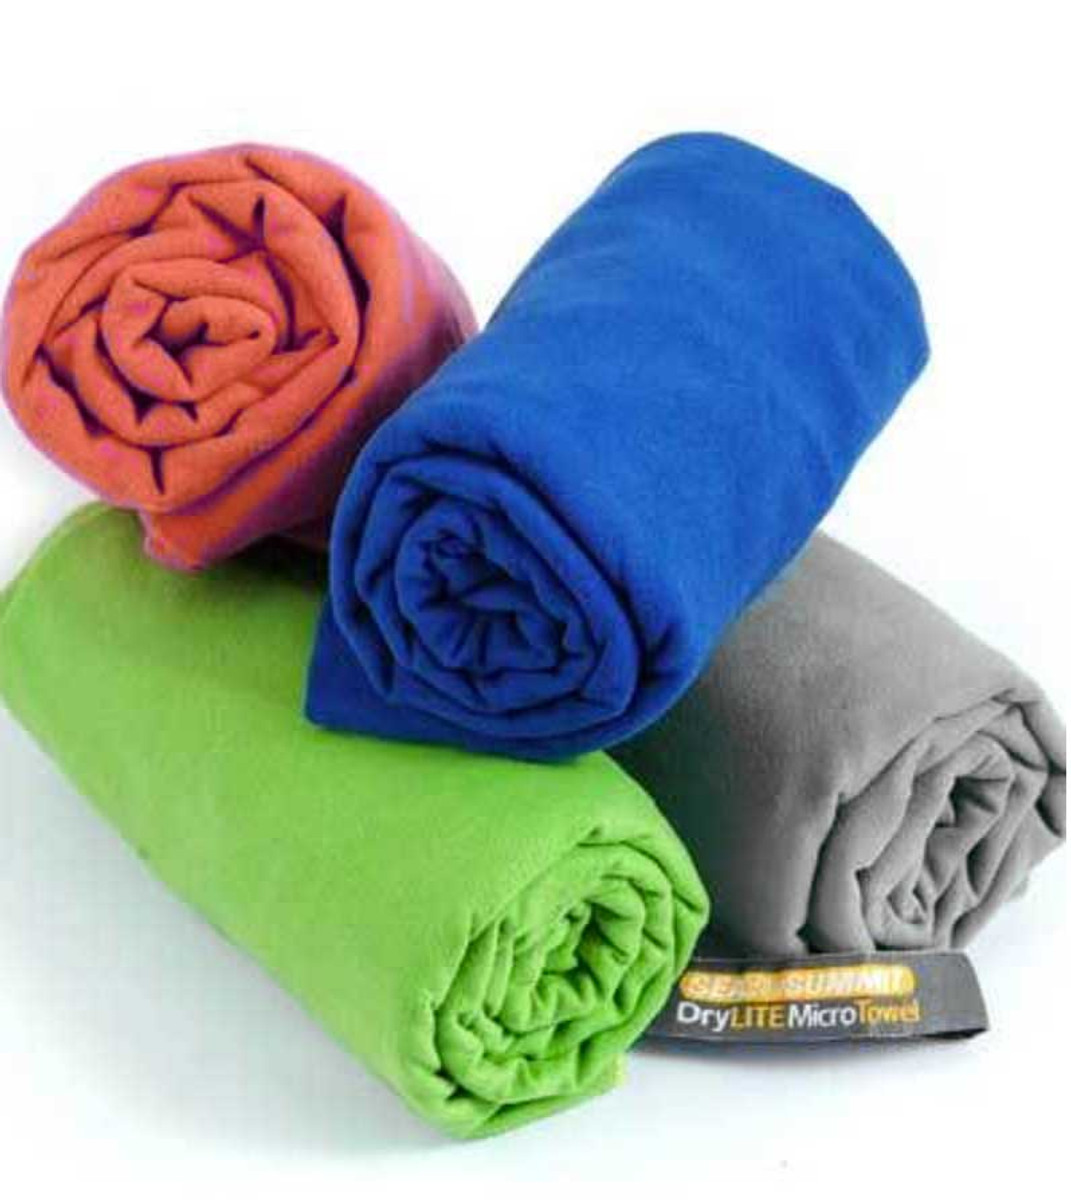 Sea to Summit Drylite towels